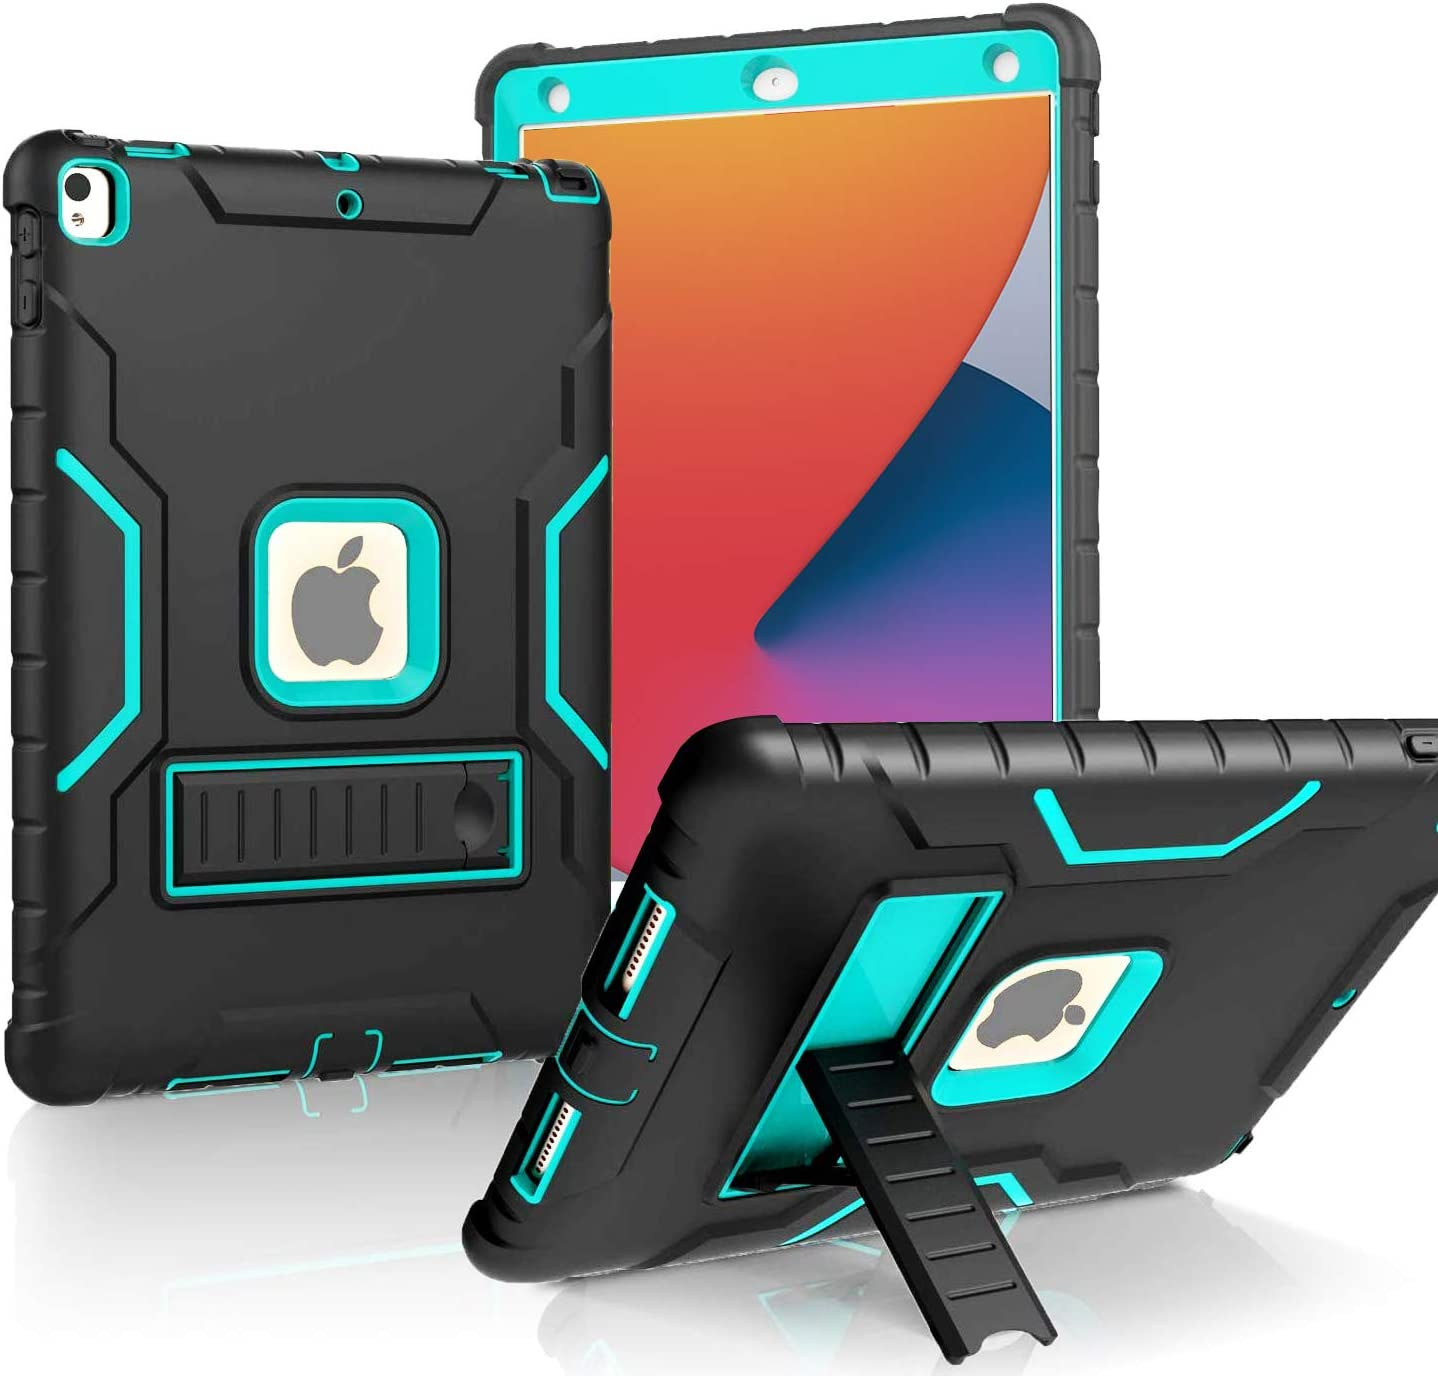 LTROP New iPad 10.2 Case, iPad 8th/7th Generation Case with Built-in Screen Protector, Heavy Duty Rugged Full-Body Drop Protection Stand Case Cover for iPad 10.2-inch 2020/2019, Black and Turquoise